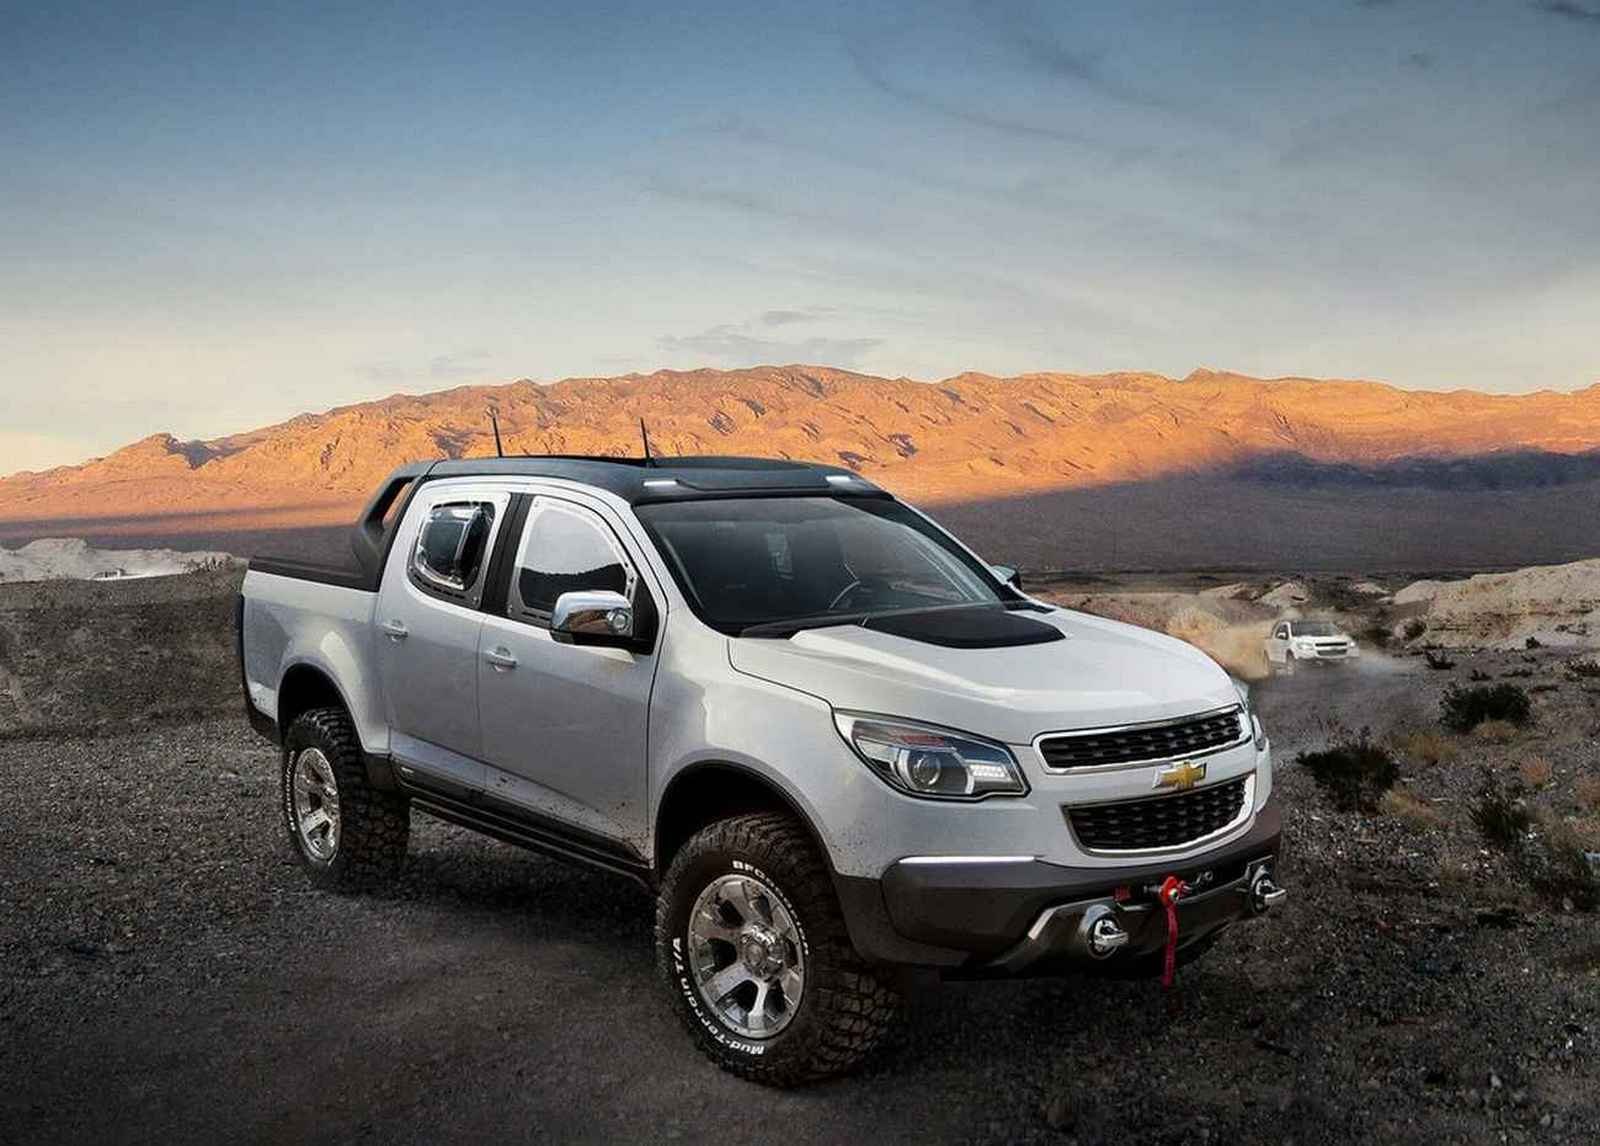 2011 Chevrolet Colorado #8